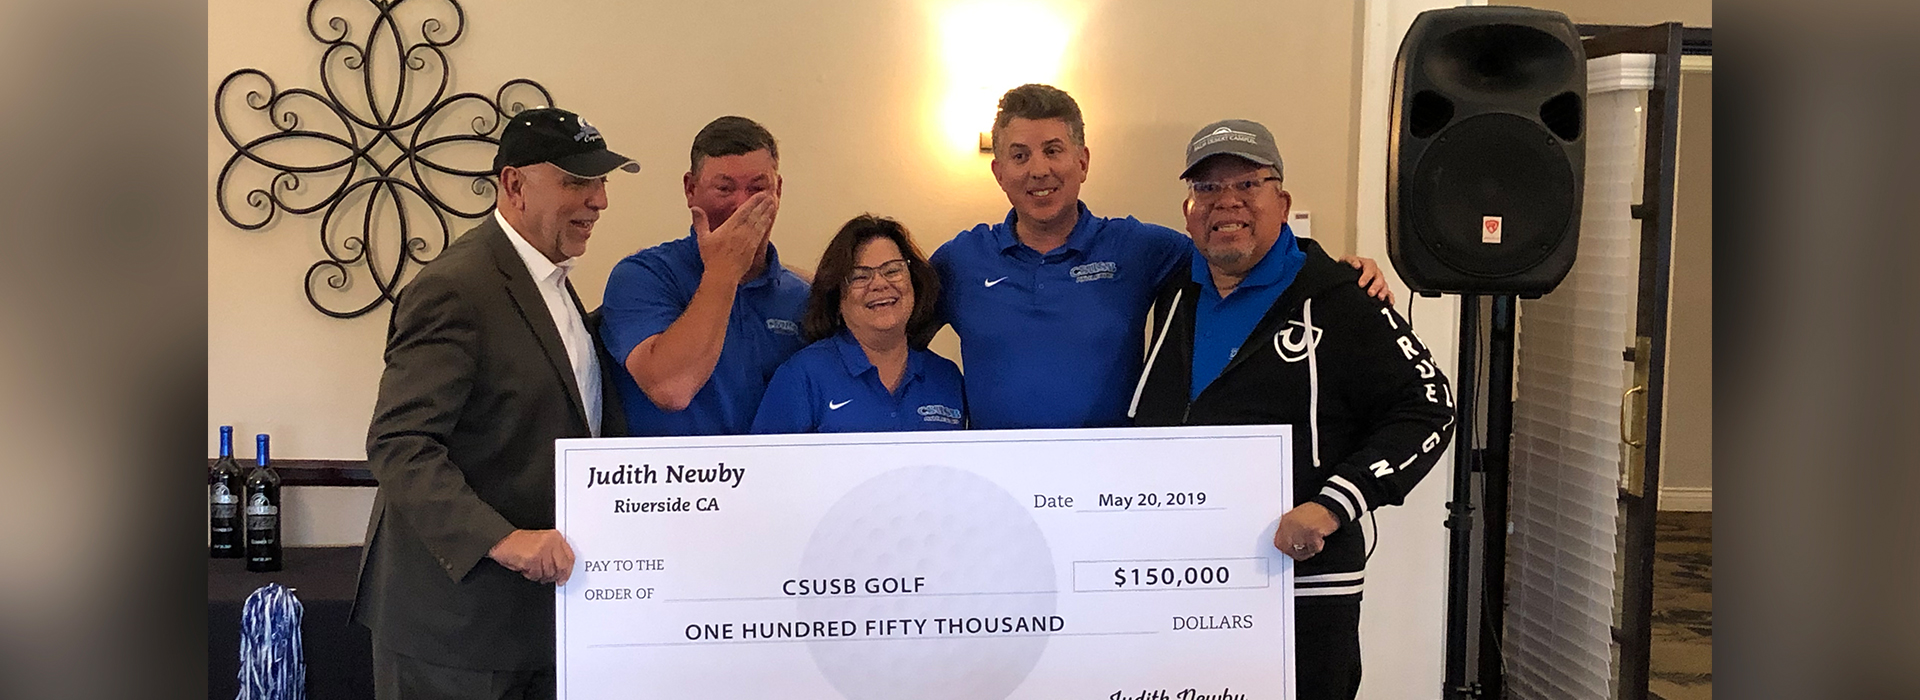 Dave Stockton Coyote Classic raises $250,000 for student-athlete scholarships, including $150,000 endowment for the William H. Colley Golf Scholarship